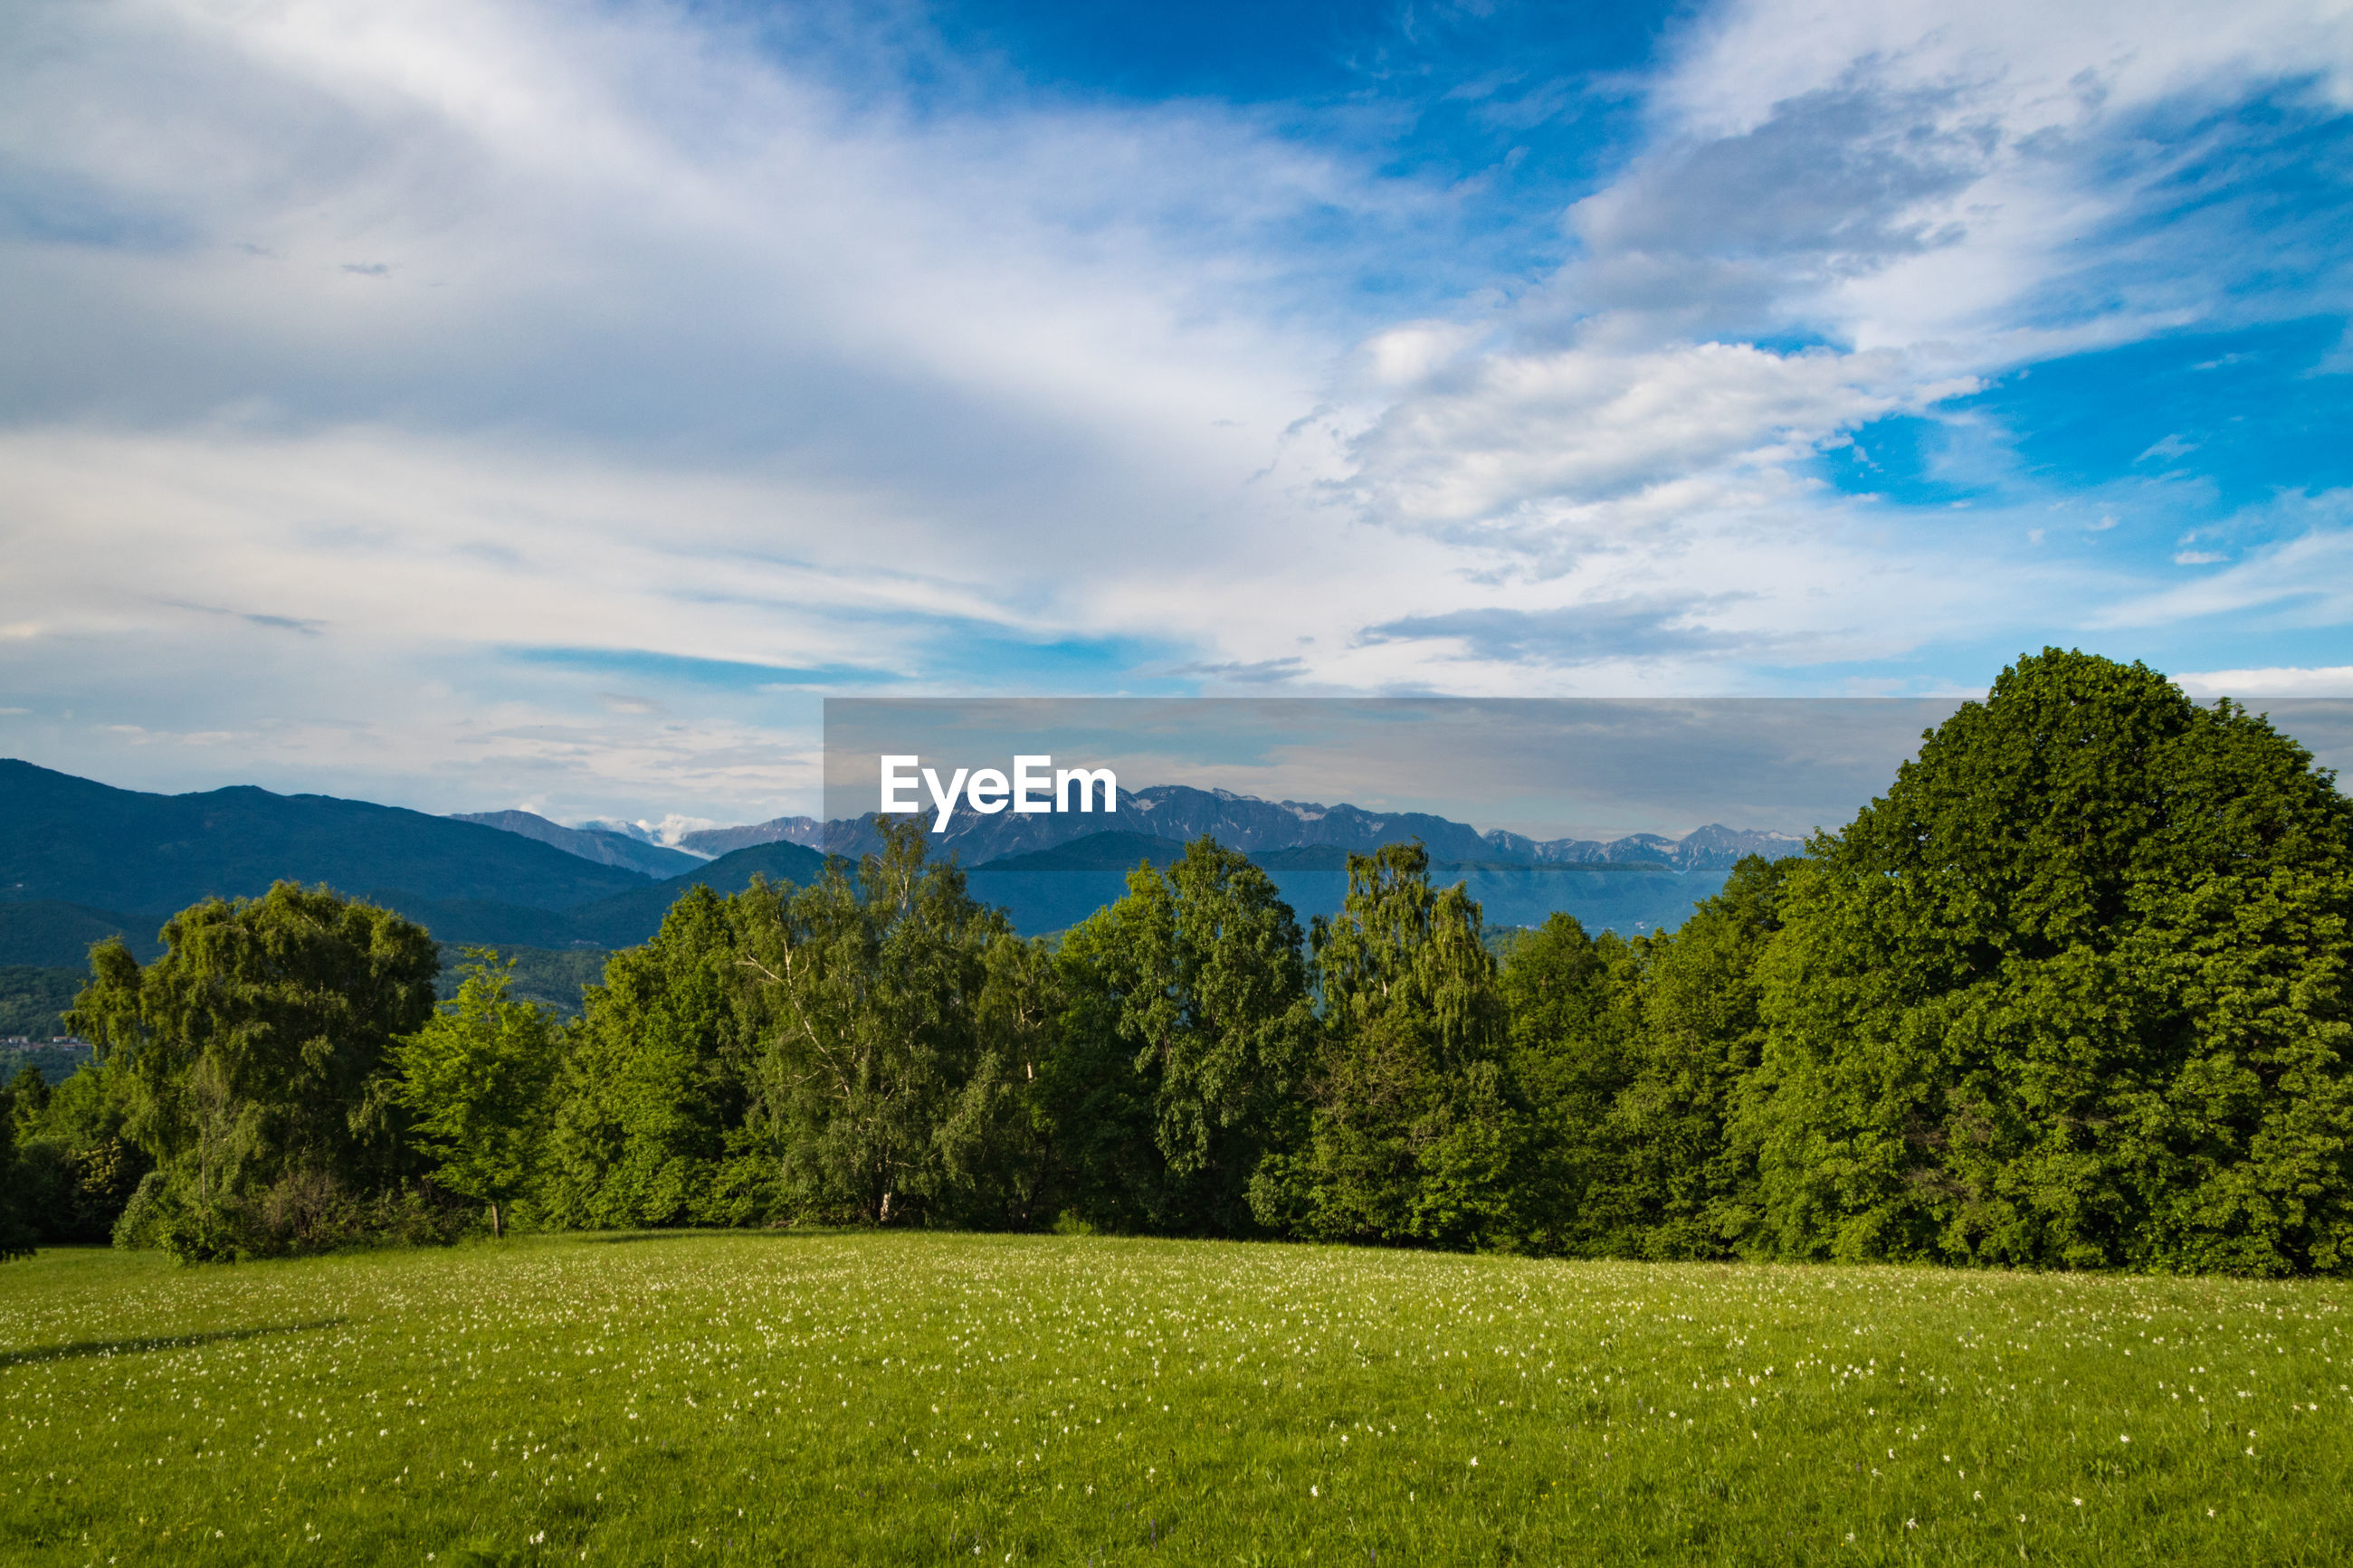 SCENIC VIEW OF TREES AND LANDSCAPE AGAINST SKY